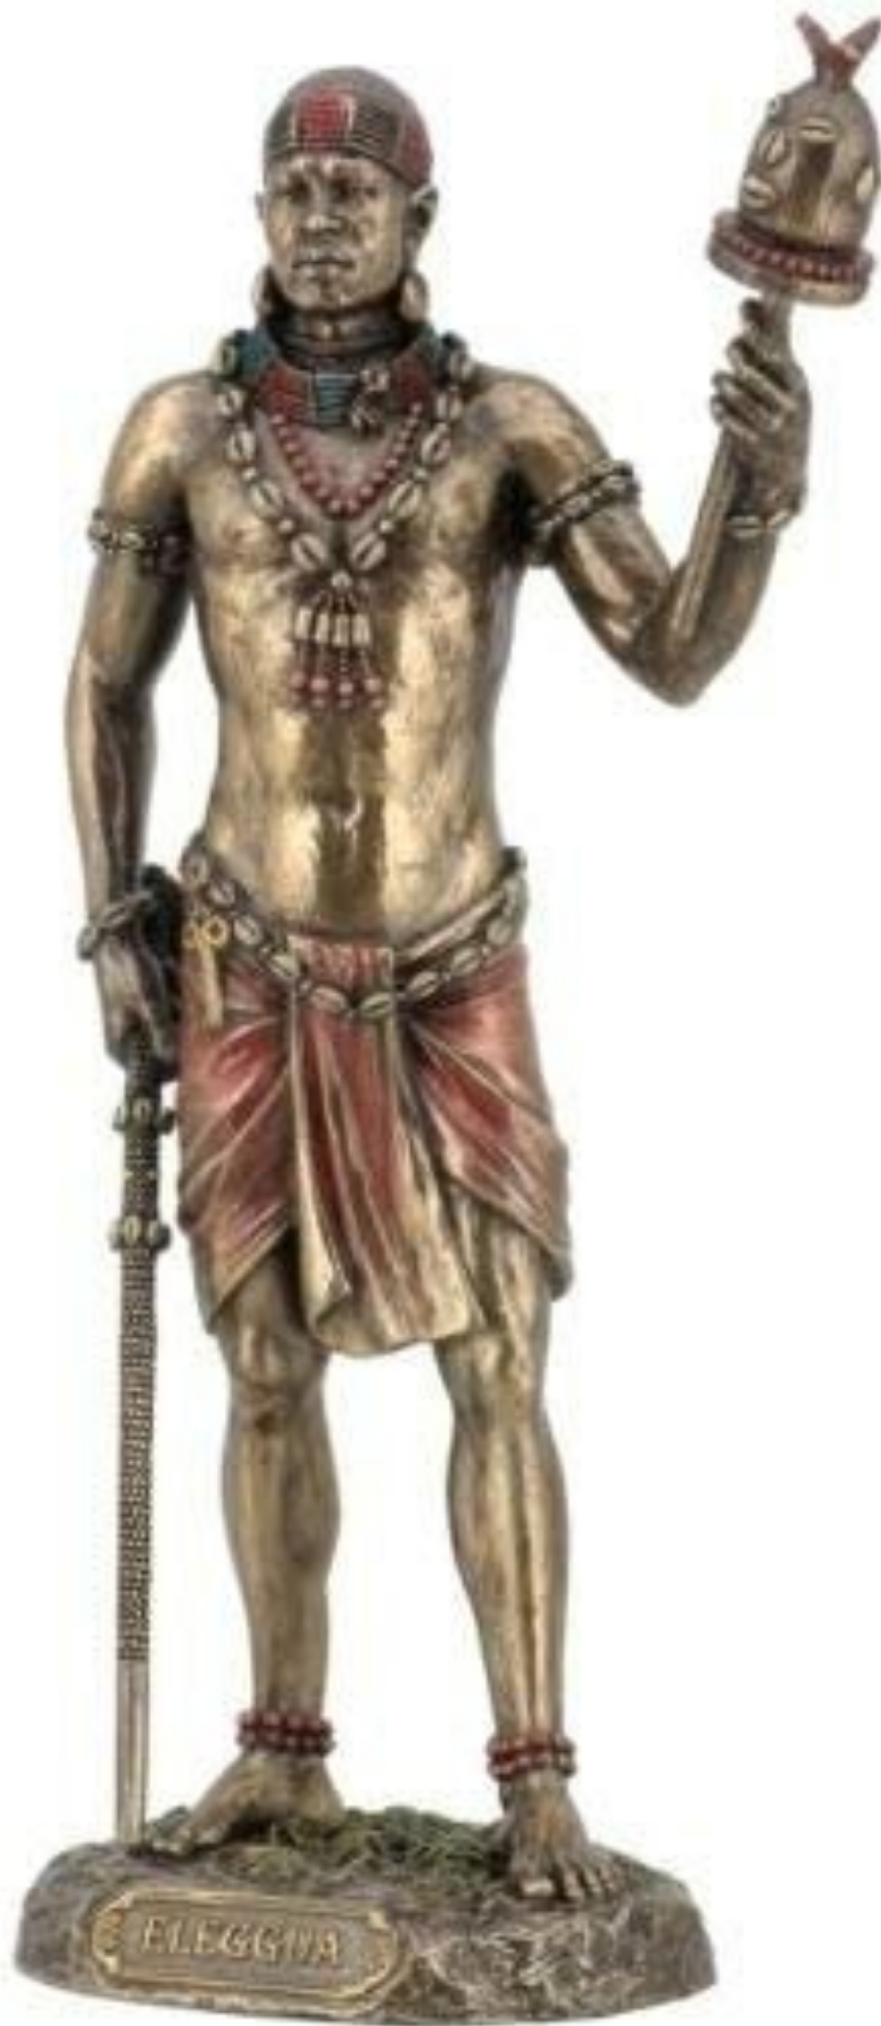 Elegua Statue (Crossroads, Decisions, Communication with the Divine)